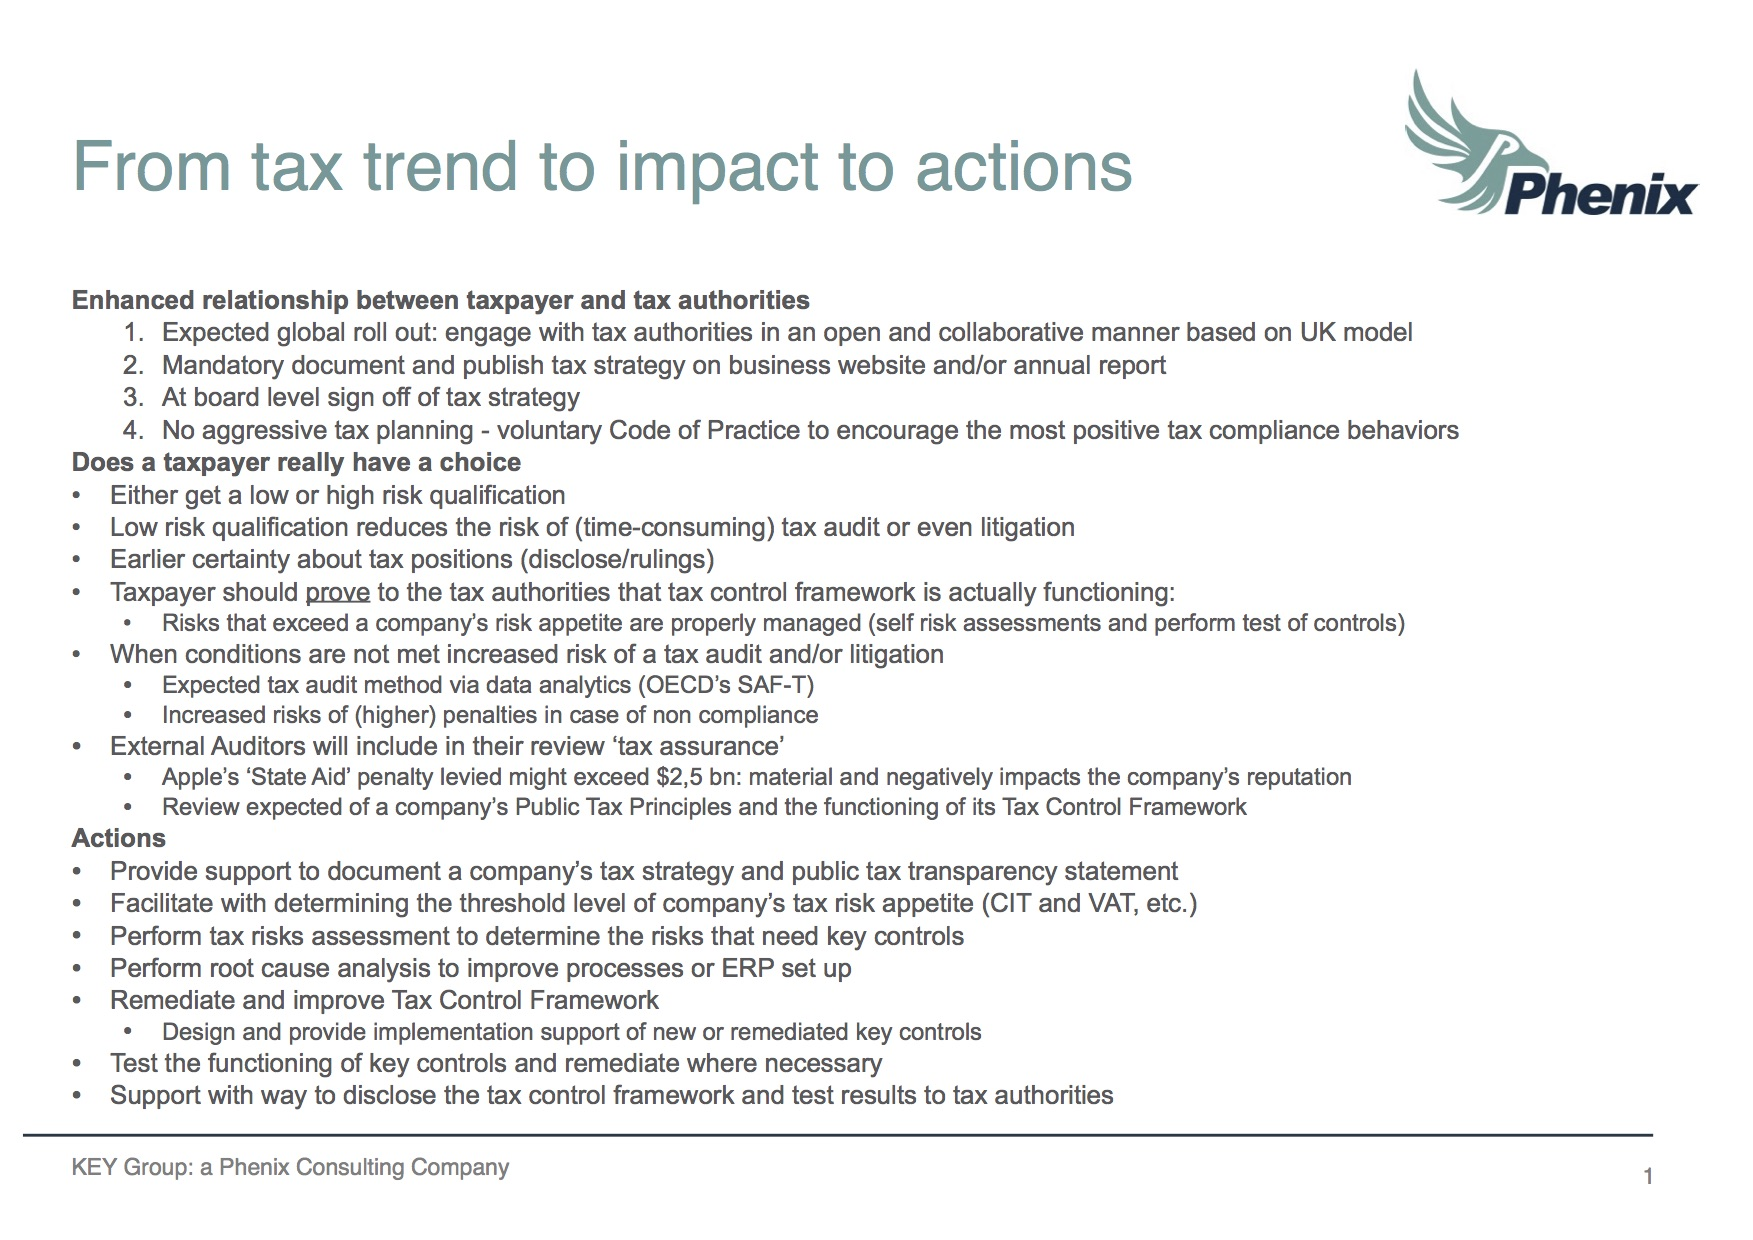 From tax trend to impact to actions